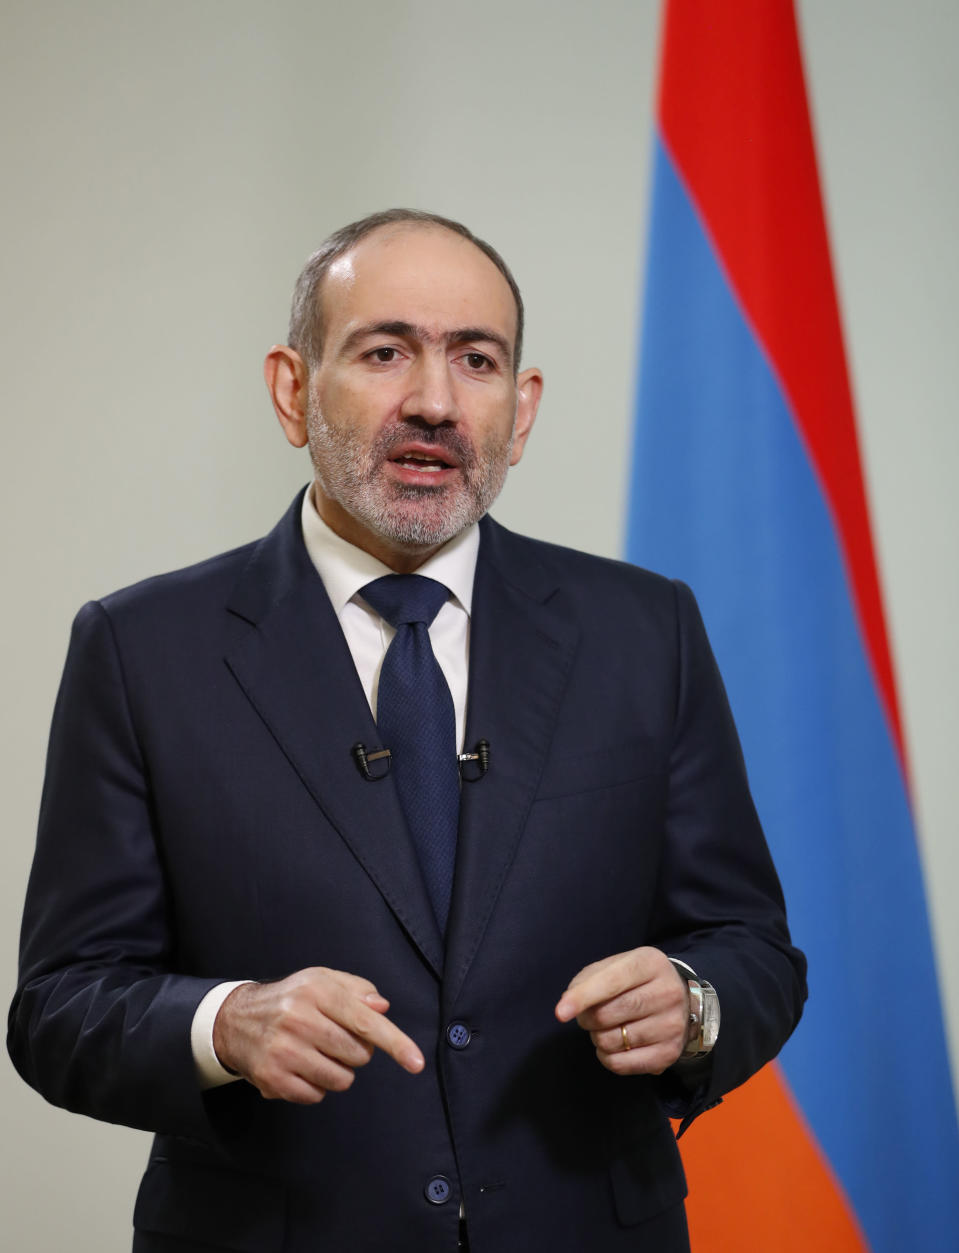 """In this photo provided by the Armenian Prime Minister Press Service via PAN Photo, Armenian Prime Minister Nikol Pashinian addresses the nation in Yerevan, Armenia, Thursday, Nov. 12, 2020. Pashinian said in a series of video statements on his Facebook page that it was """"extremely painful for me personally and for our people,"""" calling the situation a """"catastrophe."""" (Tigran Mehrabyan, Armenian Prime Minister Press Service/PAN Photo via AP)"""